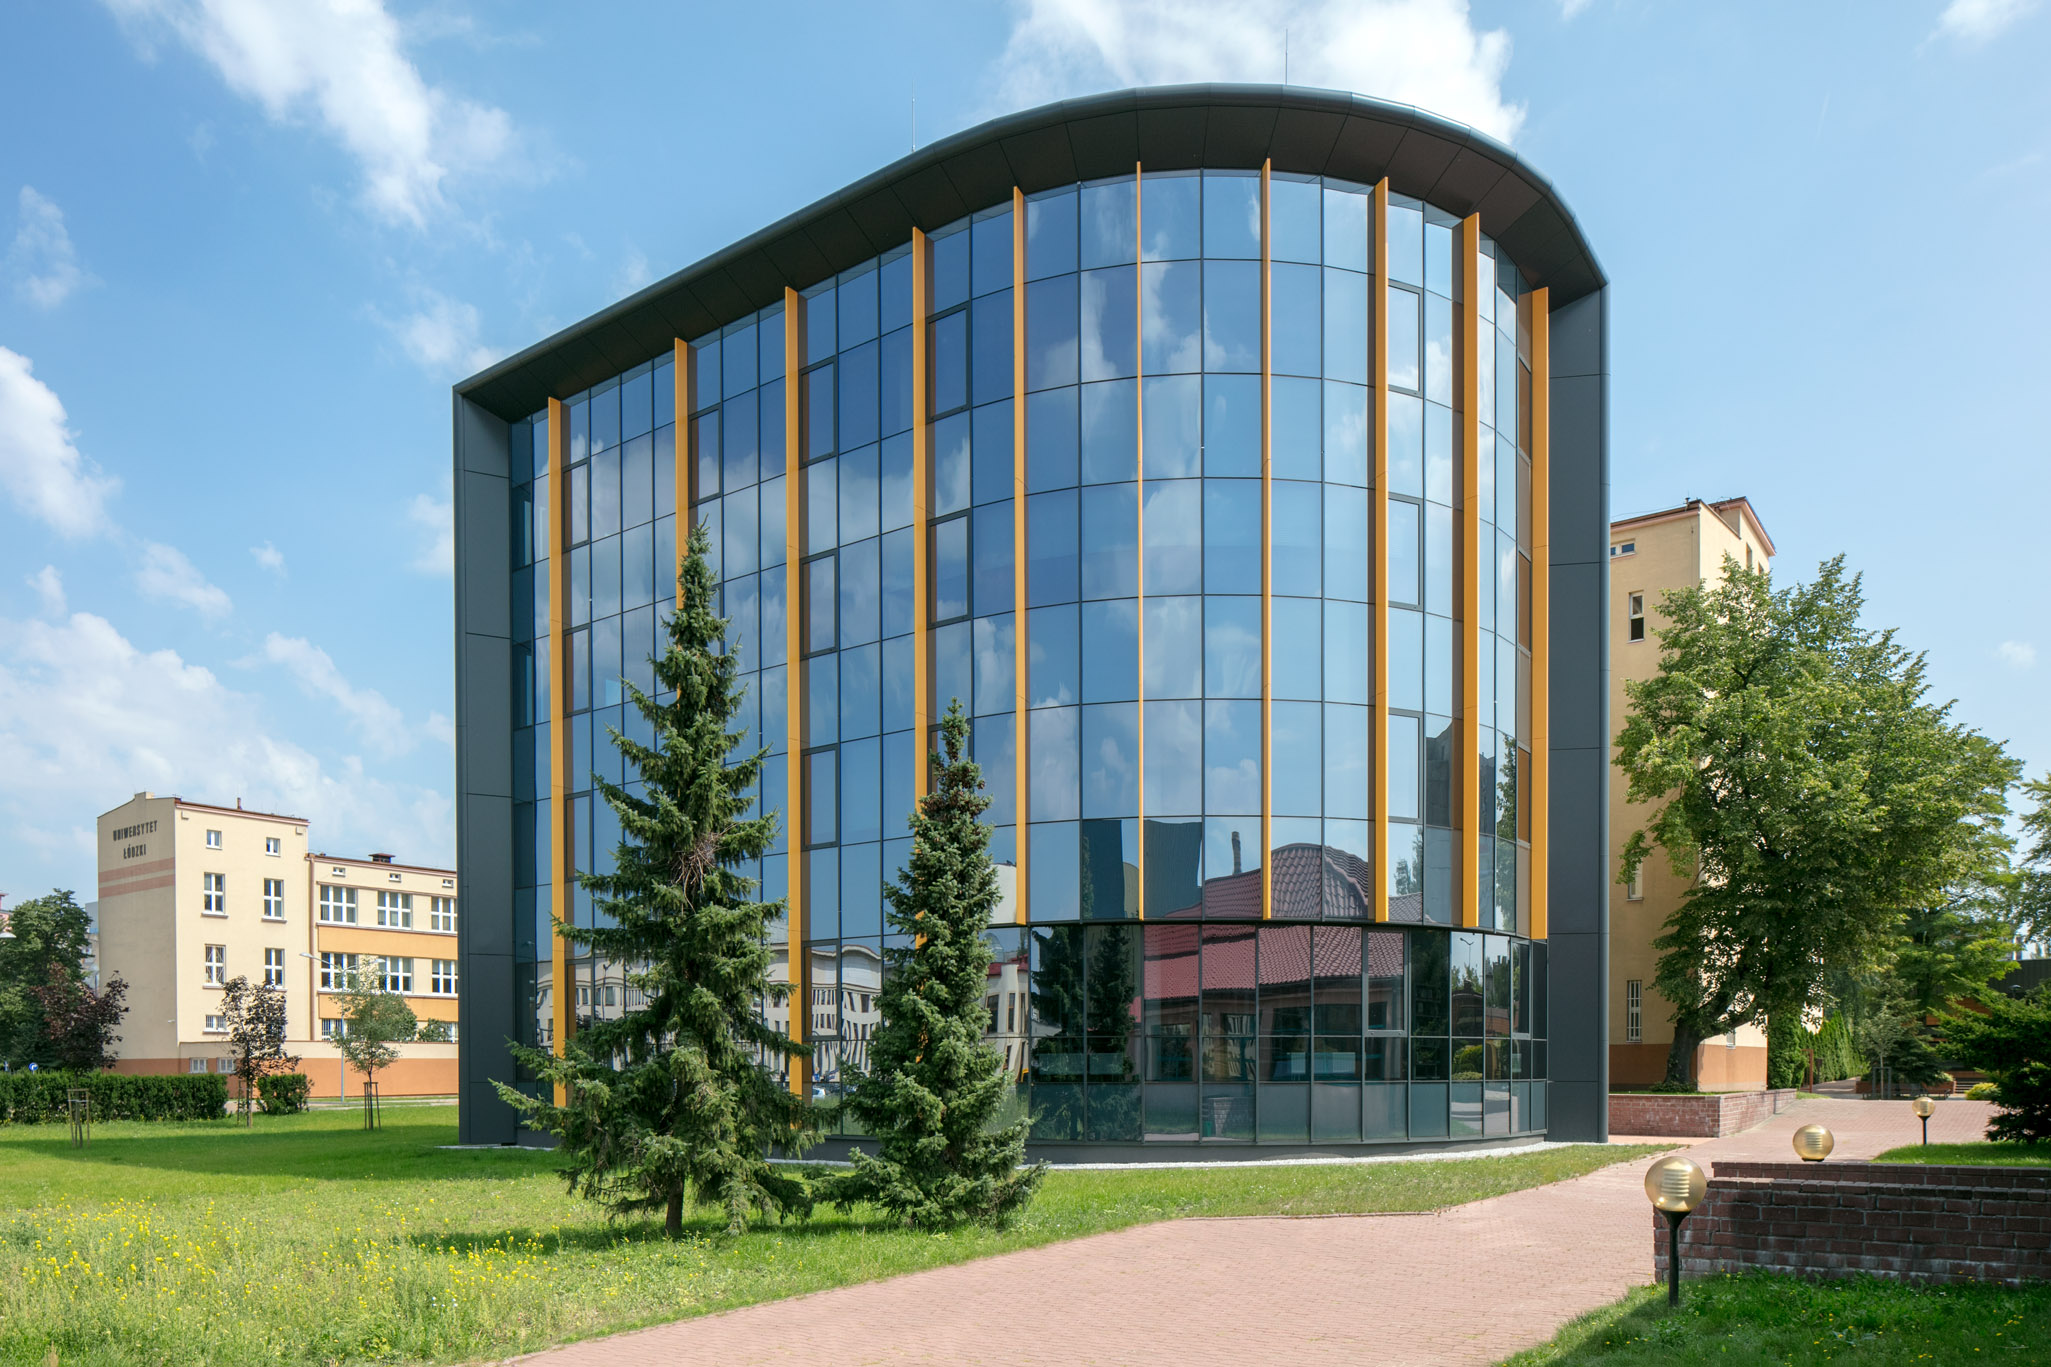 philosophy-history-faculty-lodz-STB-469